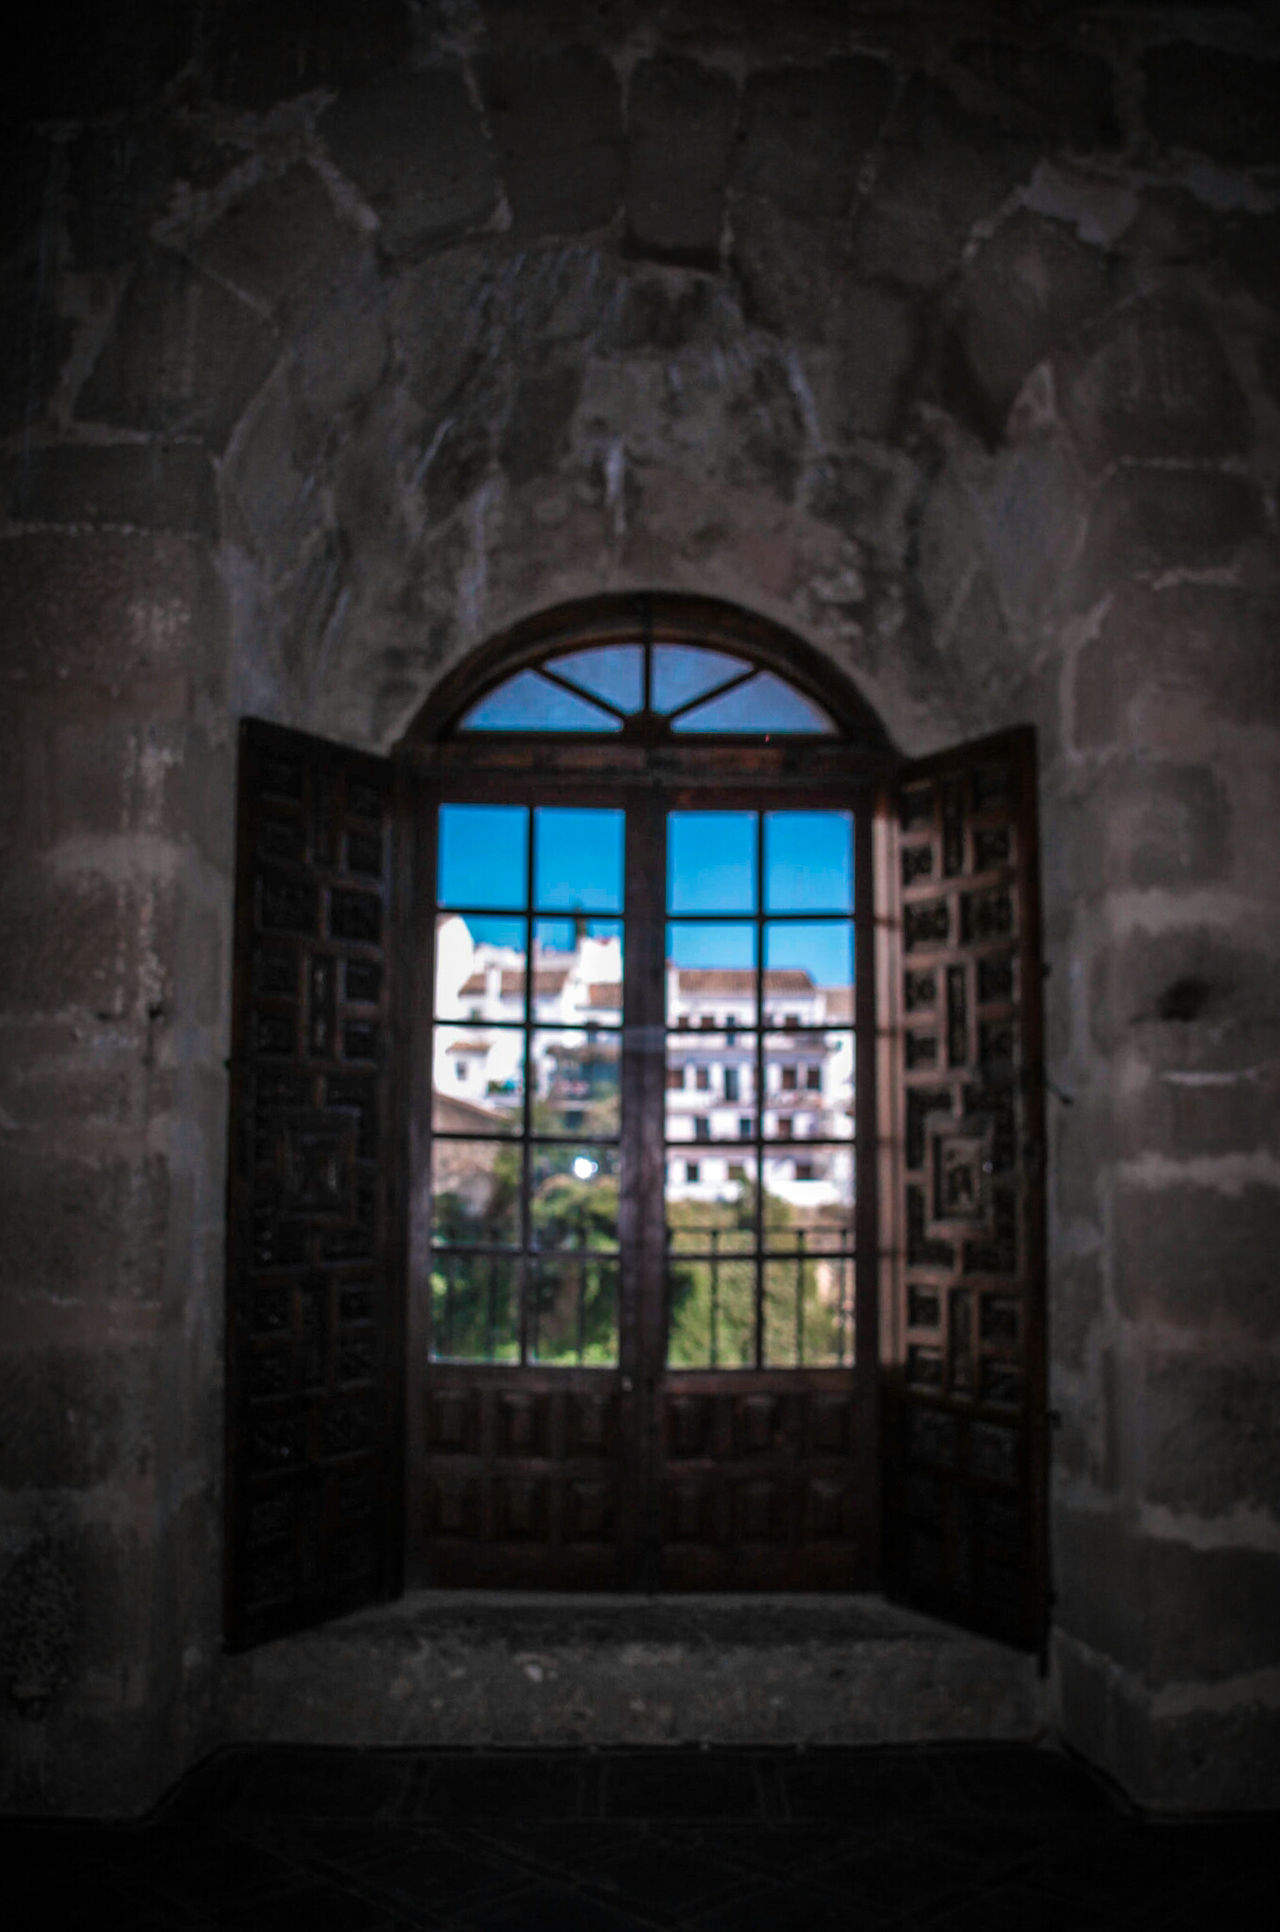 Window Indoors  No People Architecture Built Structure Arch Day Ronda, Malaga Ronda Ronda Spain EyeEm Gallery Check This Out Framed Puente Nuevo De Ronda